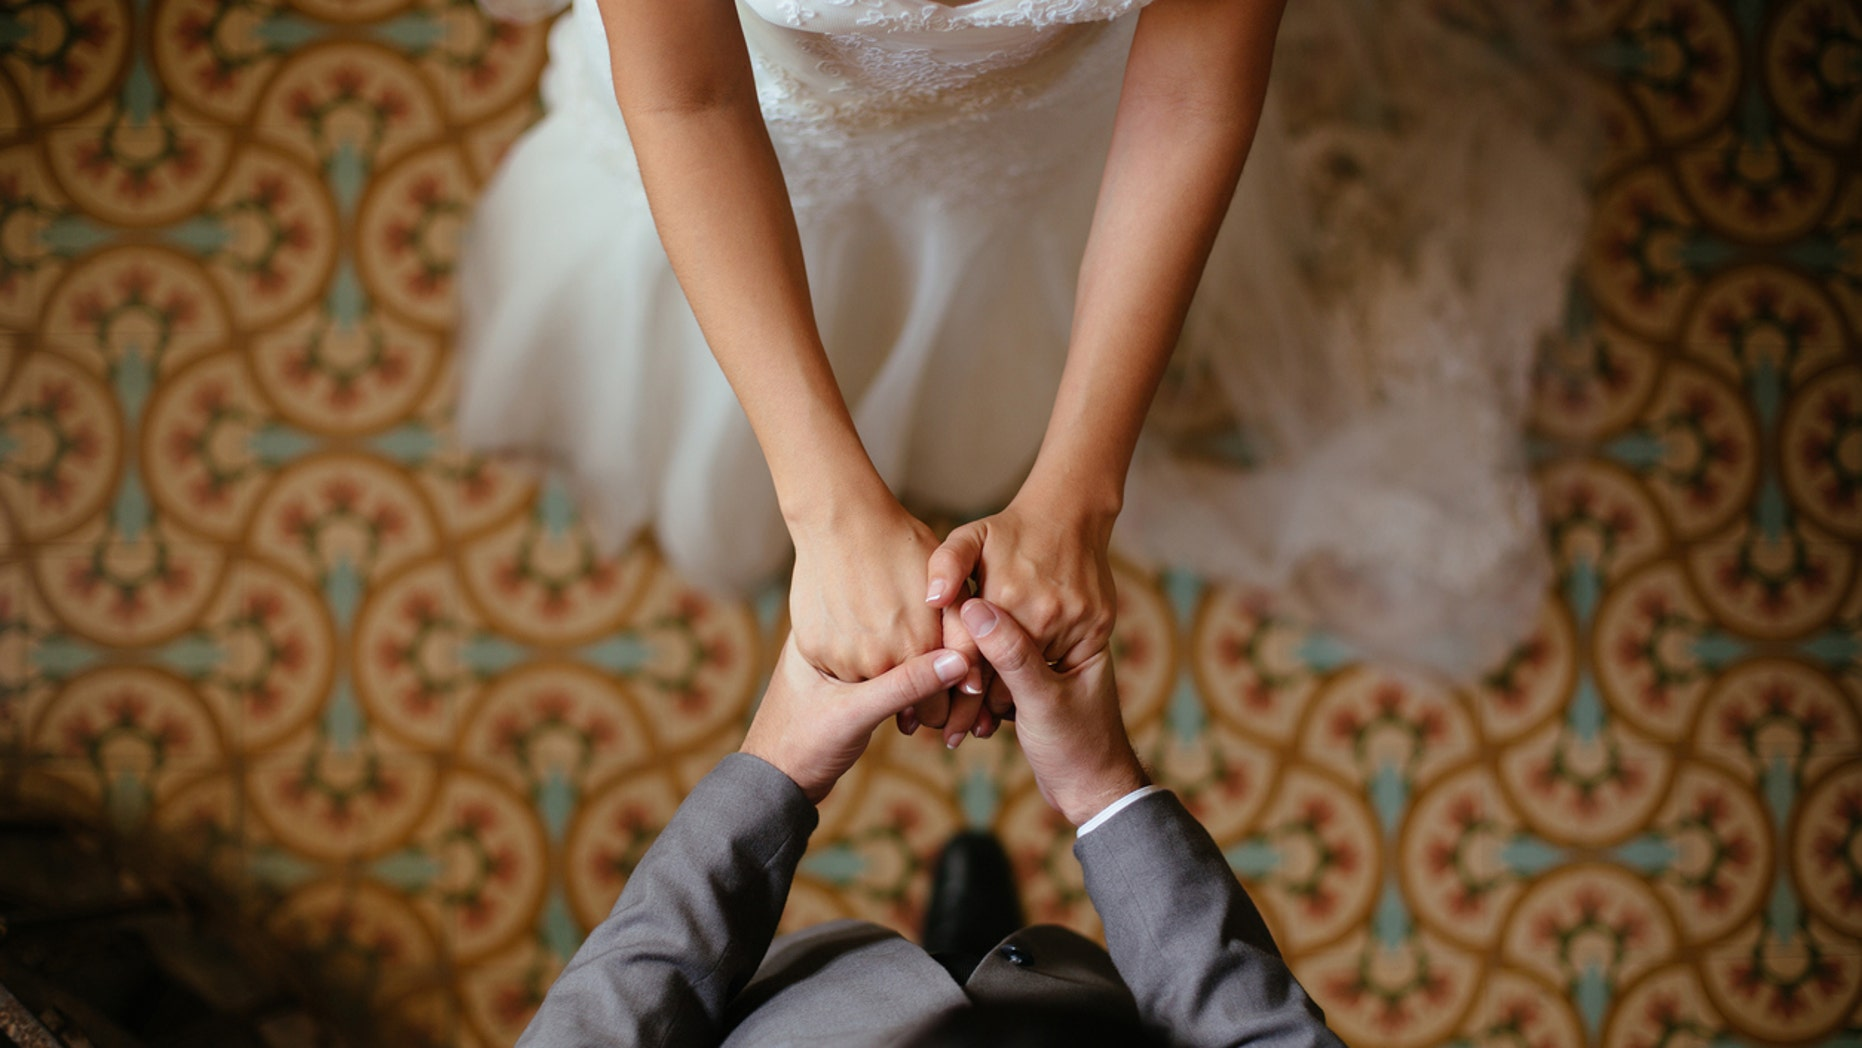 A close up shot of a bride and groom holding hands from a top view.